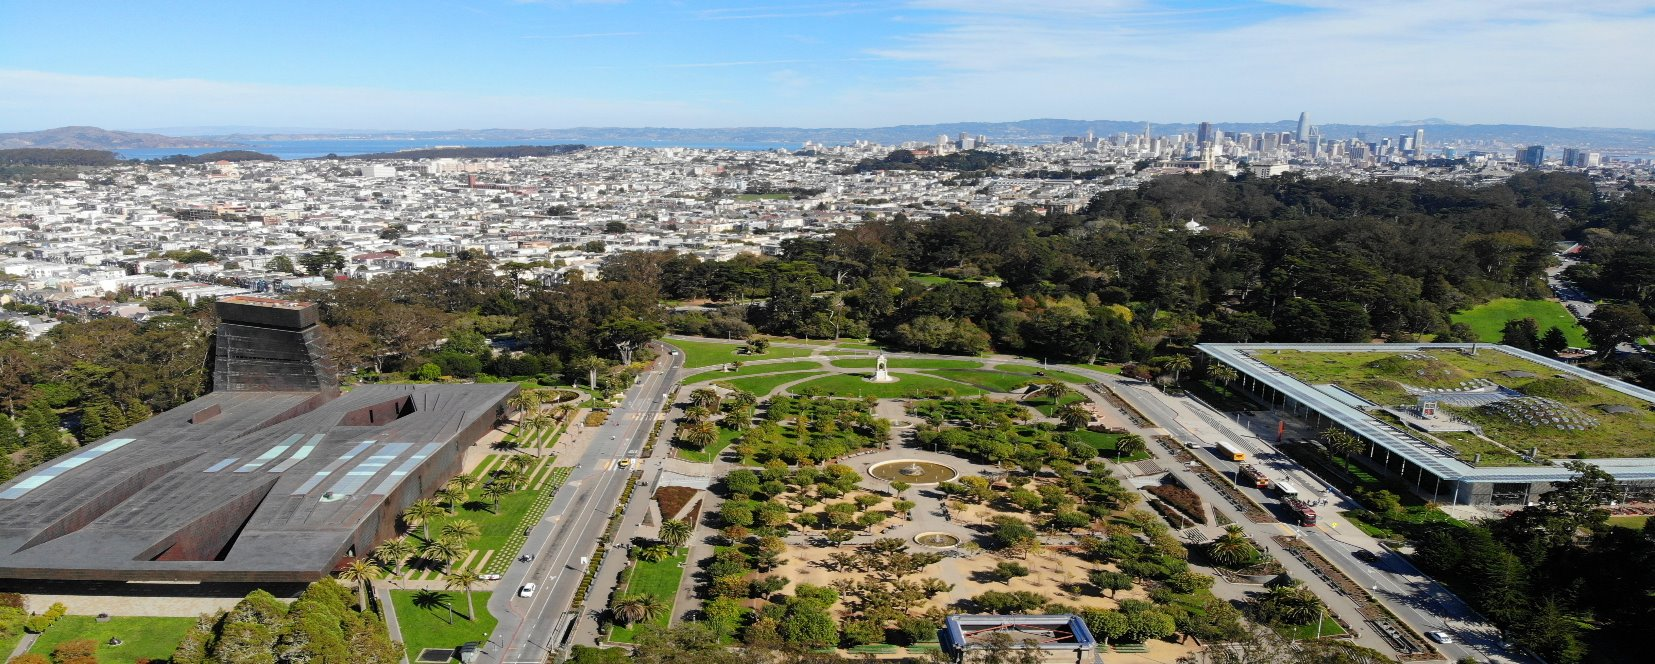 top_things_to_do_&_places_to_visit_in_san_francisco_visit_the_golden_gate_park